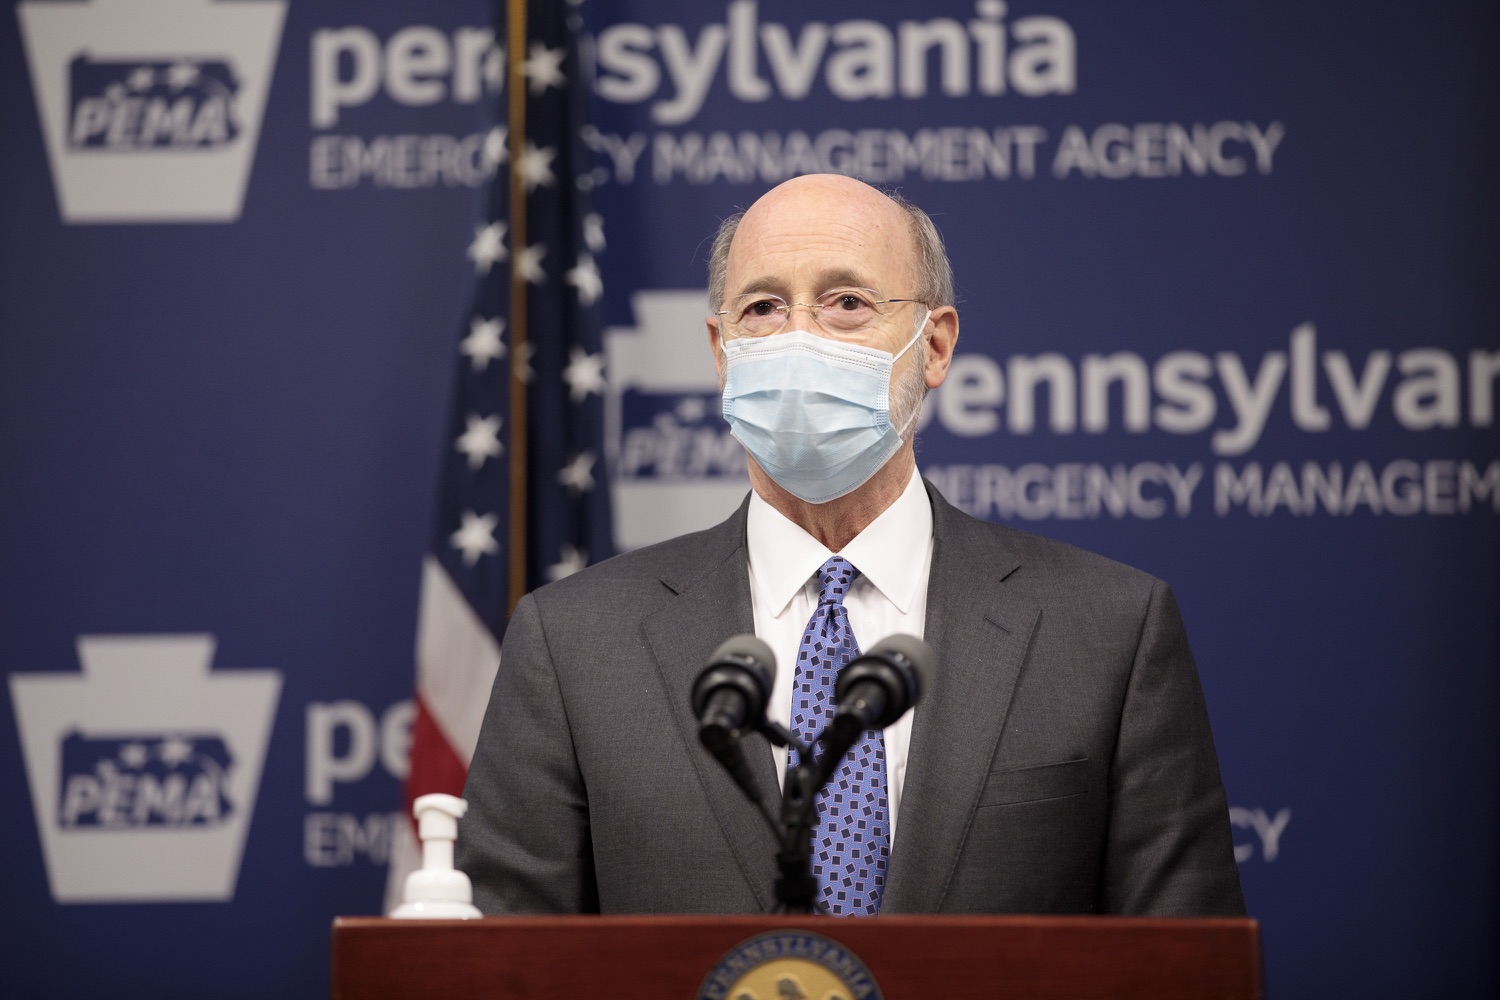 "<a href=""https://filesource.wostreaming.net/commonwealthofpa/photo/18472_gov_vaccine_dz_10.jpg"" target=""_blank"">⇣ Download Photo<br></a>Pennsylvania Governor Tom Wolf speaks at the press conference.  The commonwealths COVID-19 vaccination distribution plan was designed to be fluid and flexible to meet guidance and recommendations from the federal government. Today, Governor Tom Wolf and Secretary of Health Dr. Rachel Levine announced the fourth version of the plan, detailing the updates and how the state is working to ensure safe, swift implementation. Harrisburg, PA  January 8, 2021"